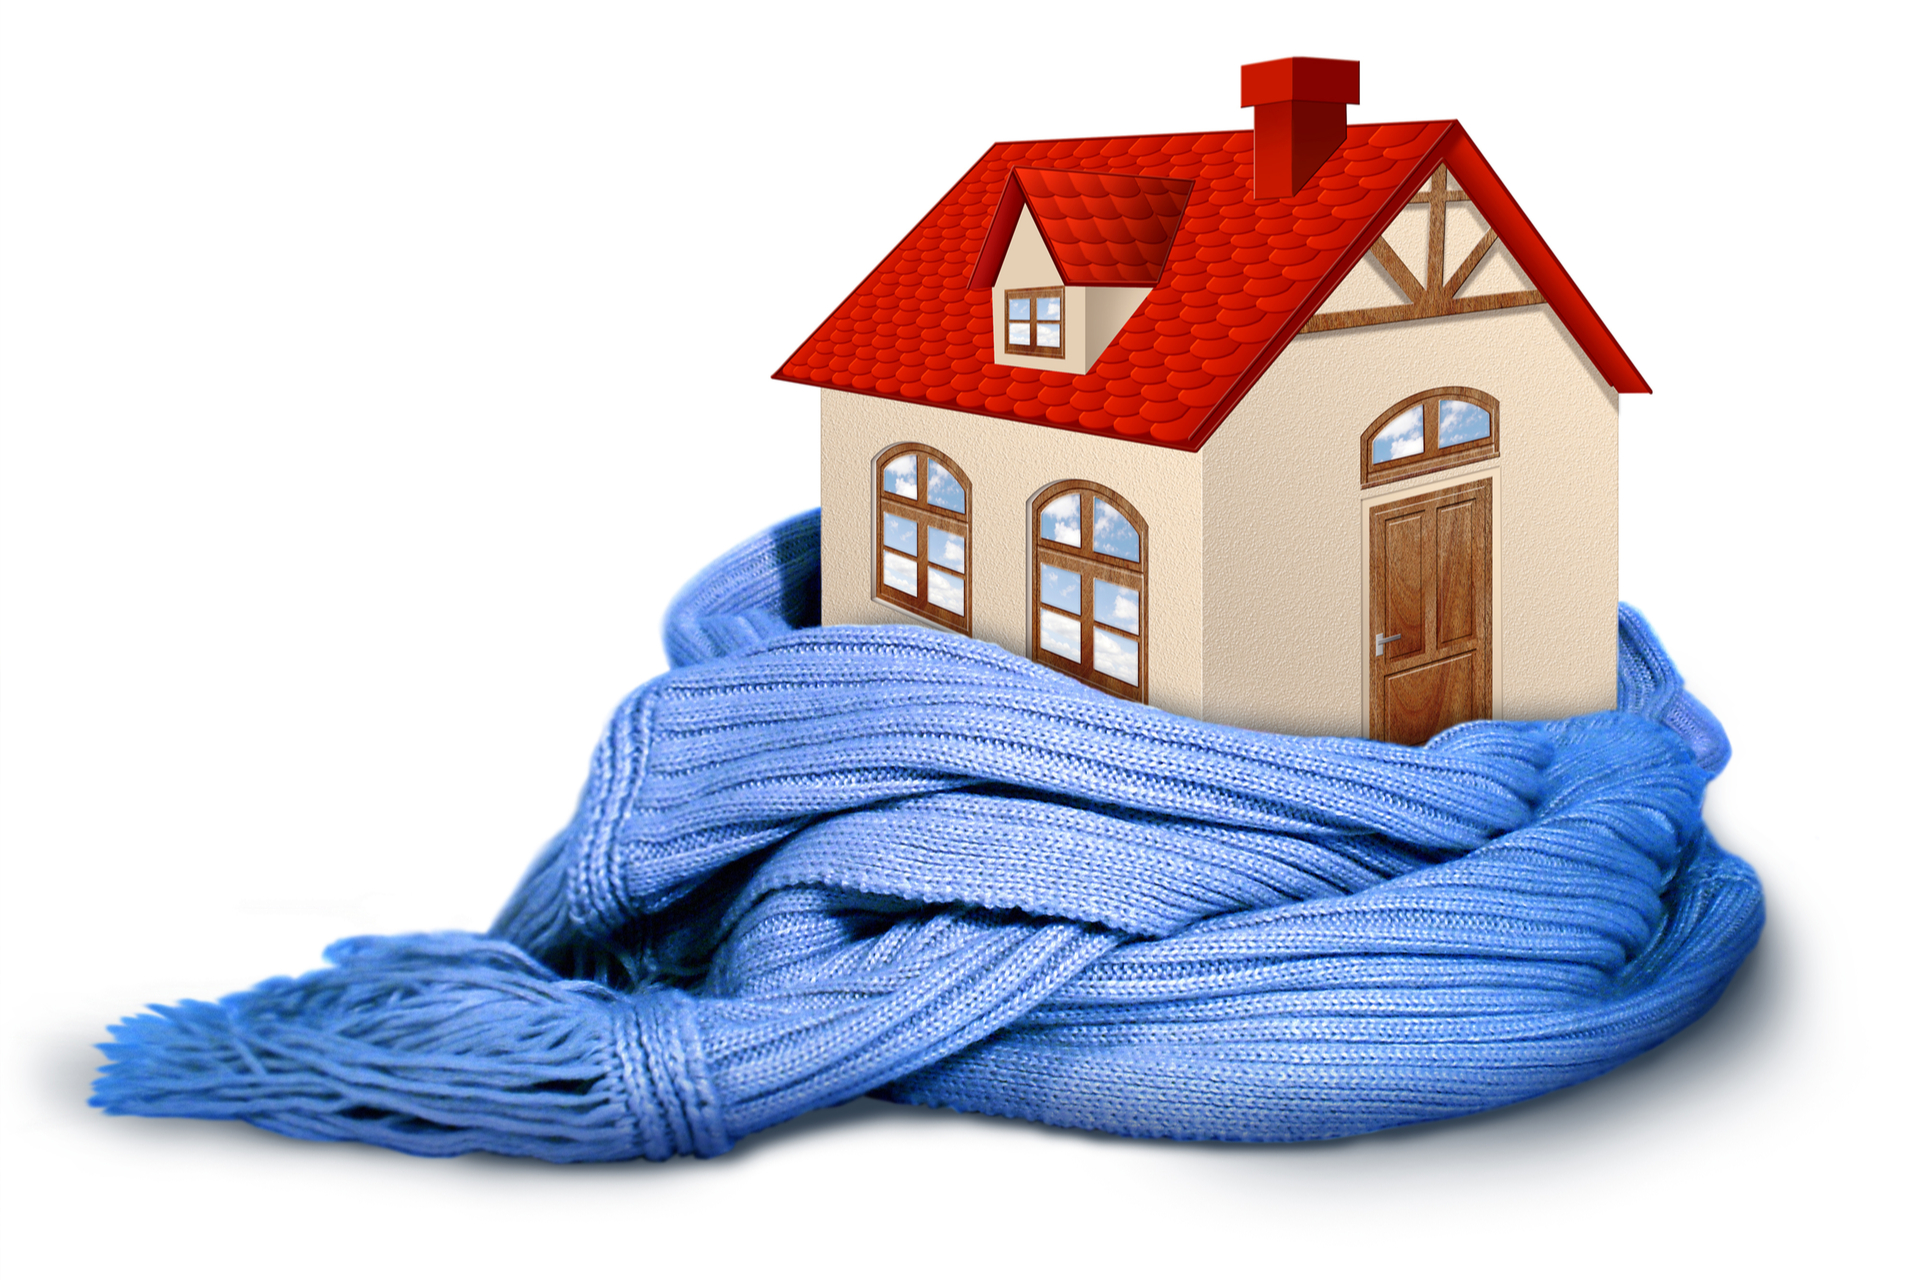 A house kept warm by good insulation.